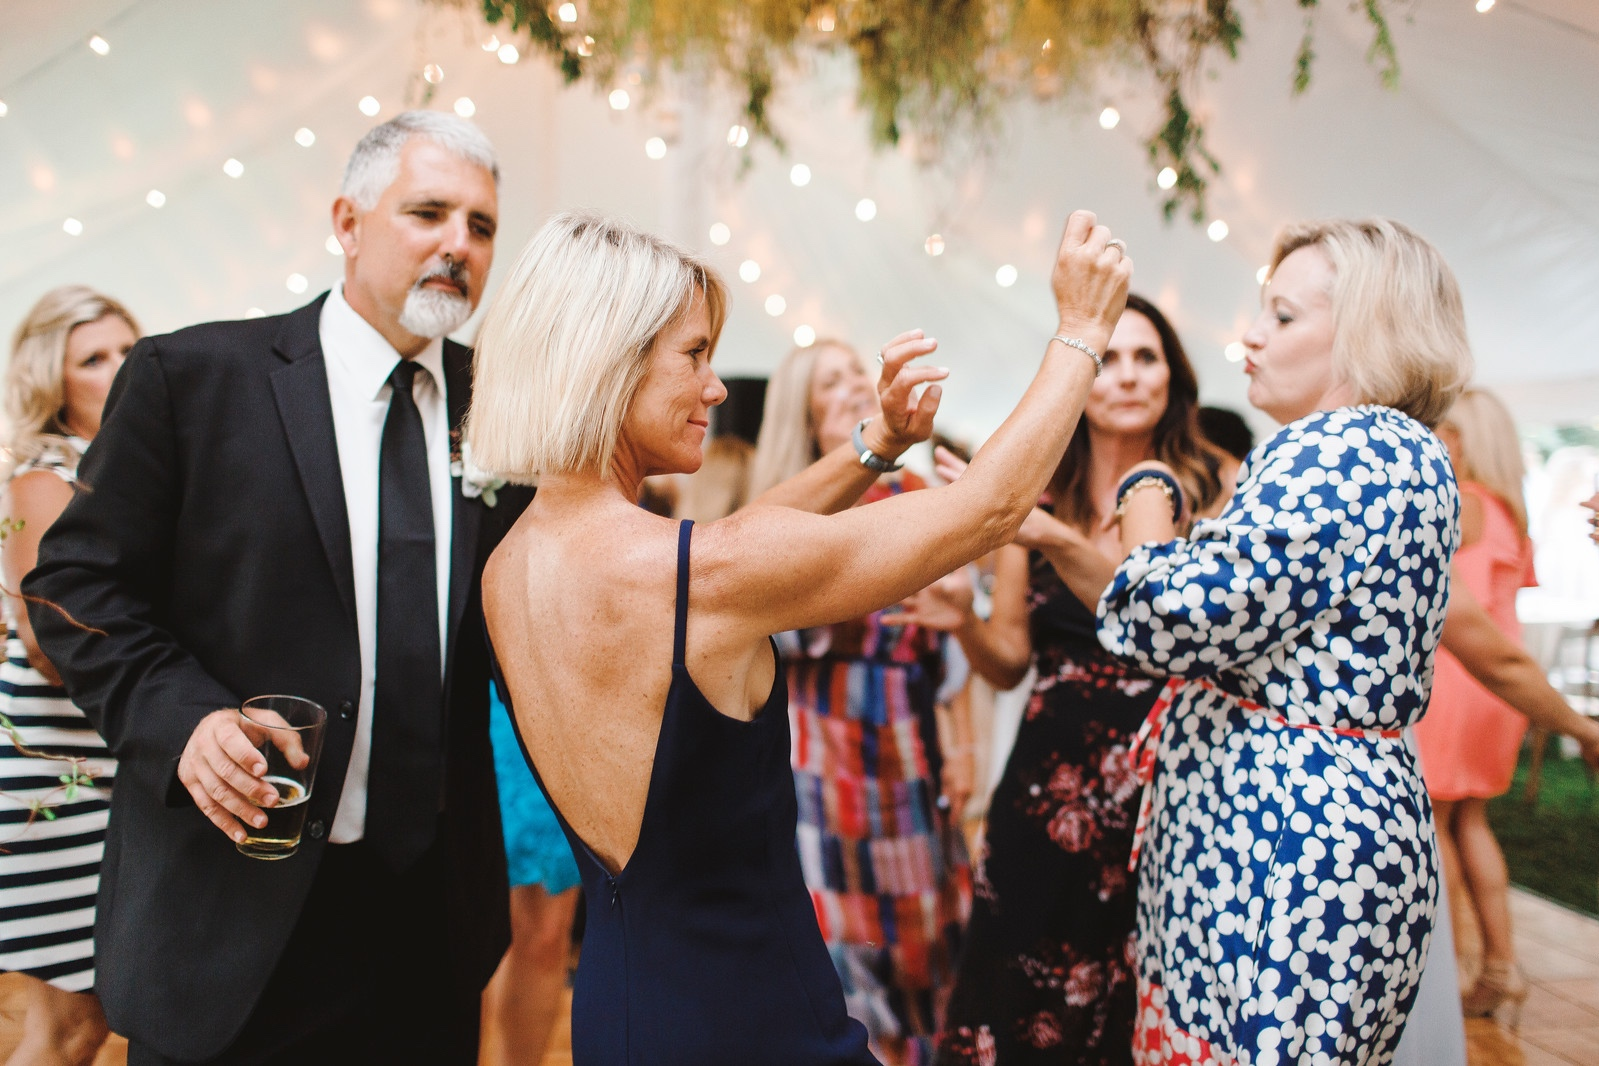 Packed Dance Floors! - We start preparation for your event the day you book us. Our DJs get to know you and create the perfect playlist for you and your guests. All of our DJ's have access to a music database that contains over 200,000 songs. Our music library dates all the way back to 1940s and all the way up to the newest, trending radio hits. We pride ourselves in being versatile so no genre is outside of our comfort zone. Oldies, Classic Rock, Disco, Funk, Old School, Retro, Top 40, Dance, Alternative, Country, Rock, Rap, R&B and Techno — we've got it all.